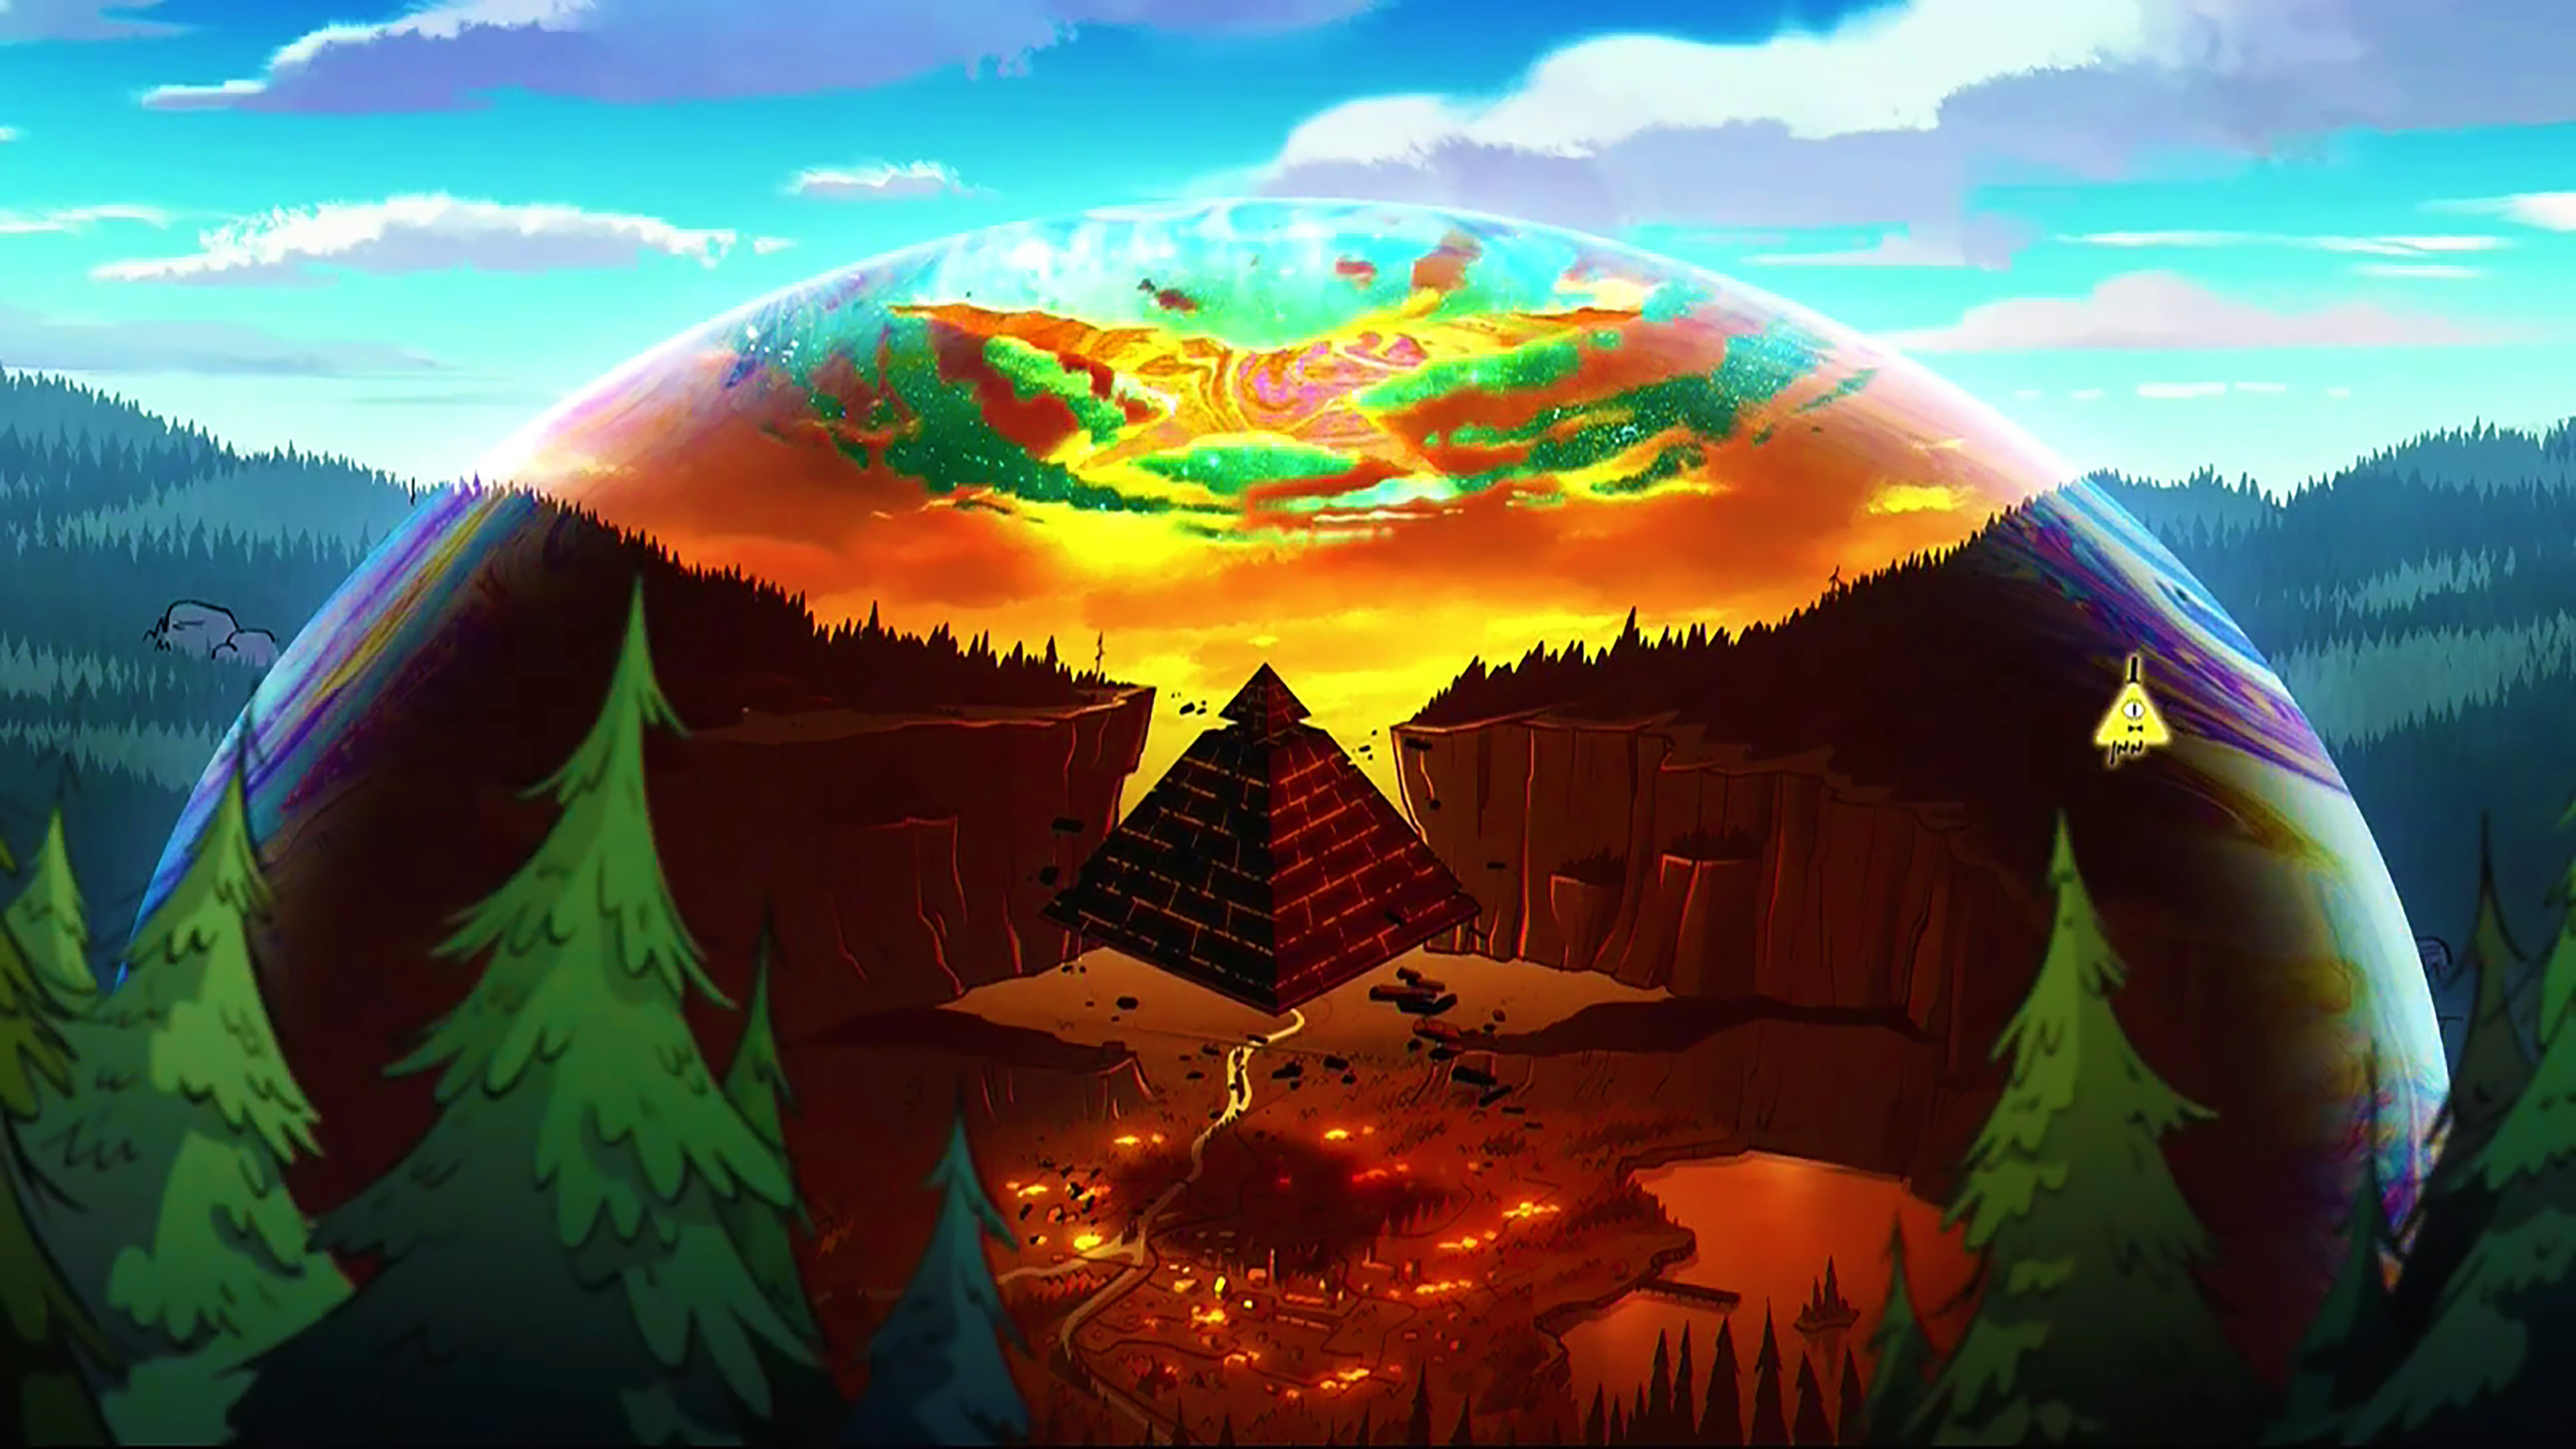 3840x2160 gravity falls wallpaper images (9)